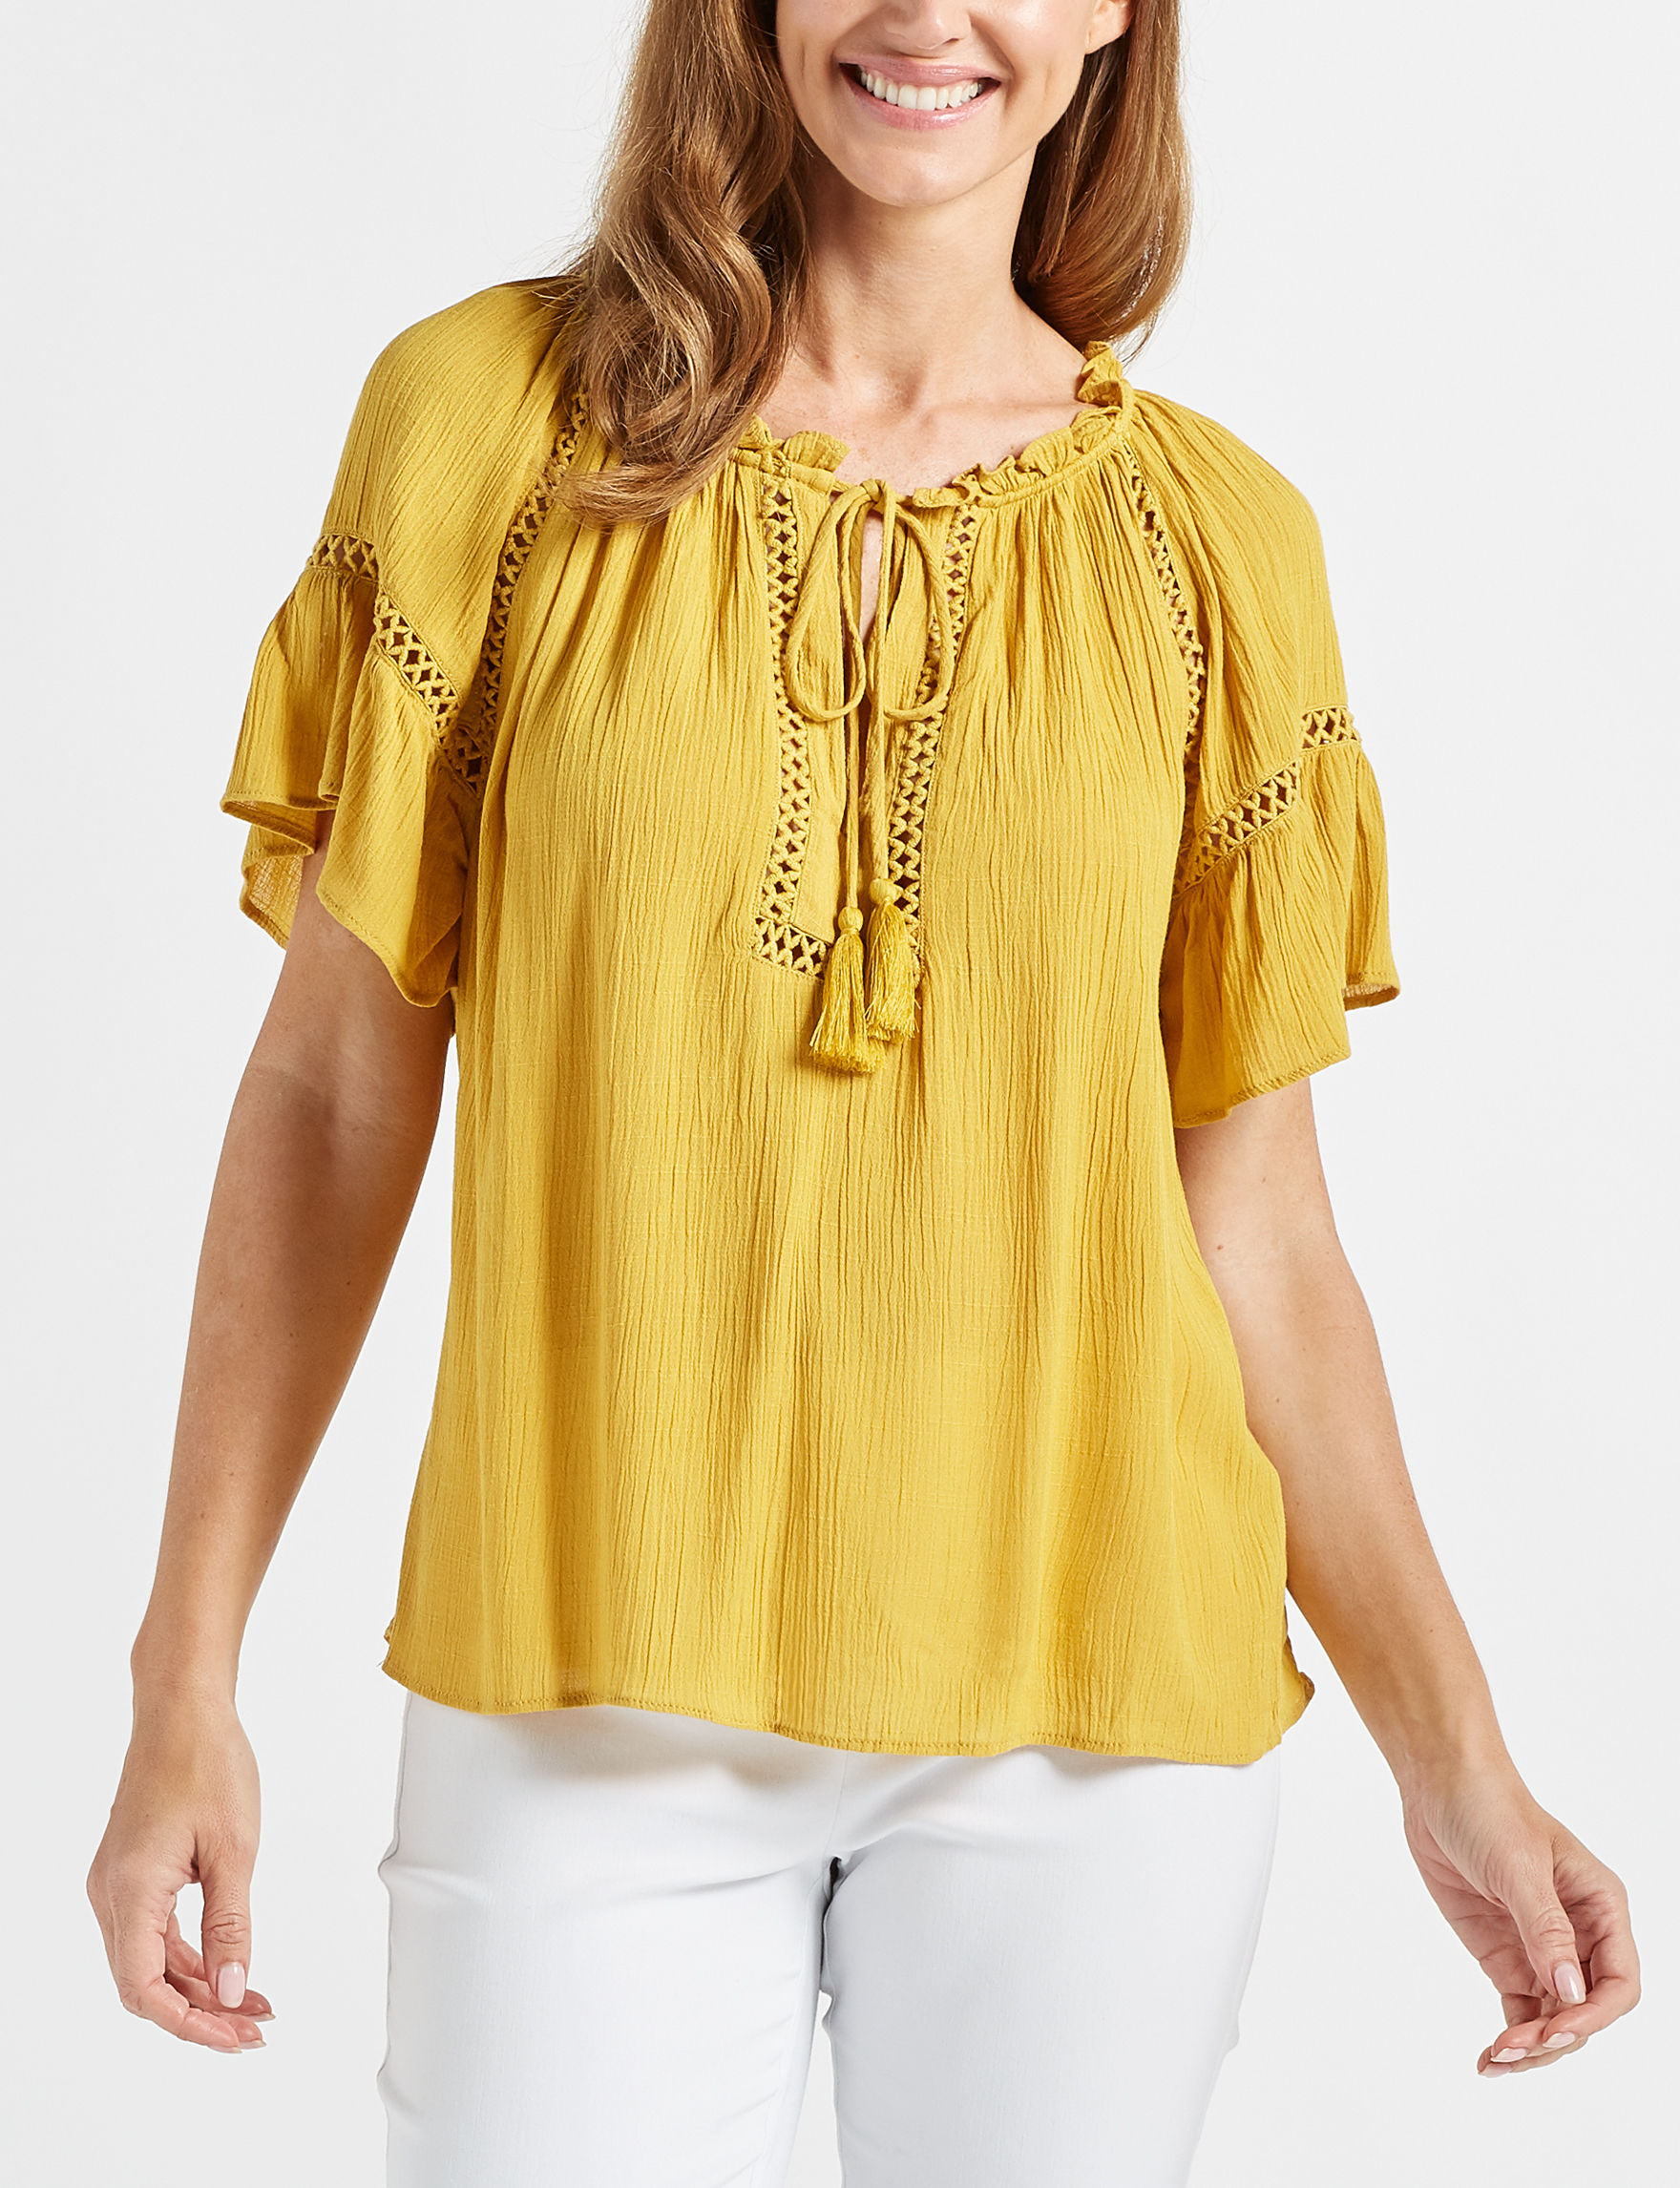 John Paul Richard Yellow Shirts & Blouses